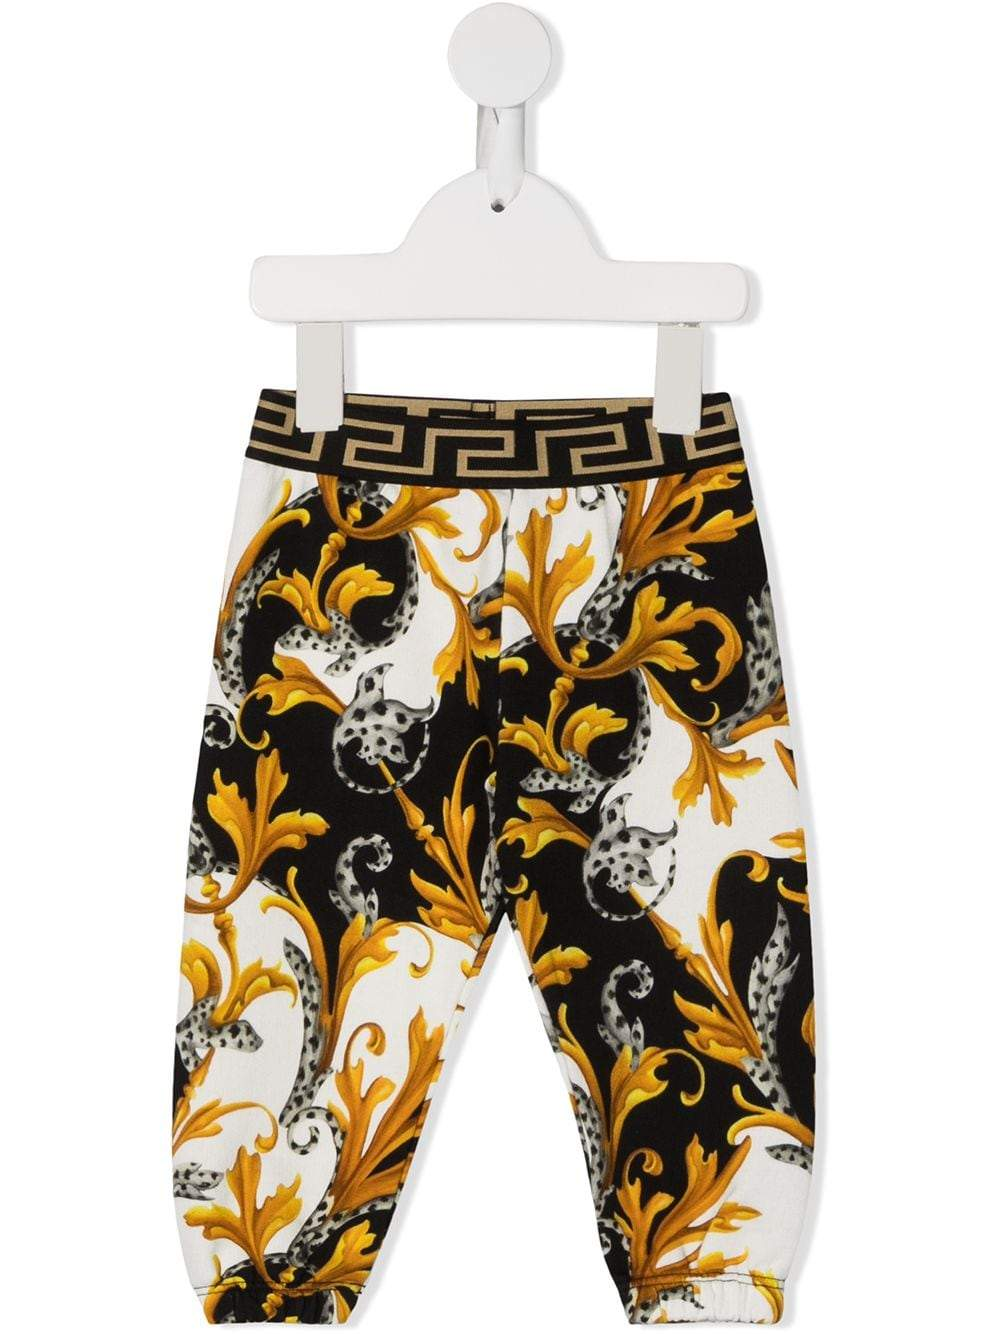 VERSACE KIDS Baby Baroque Print Waistband Leggins White/Gold - Maison De Fashion